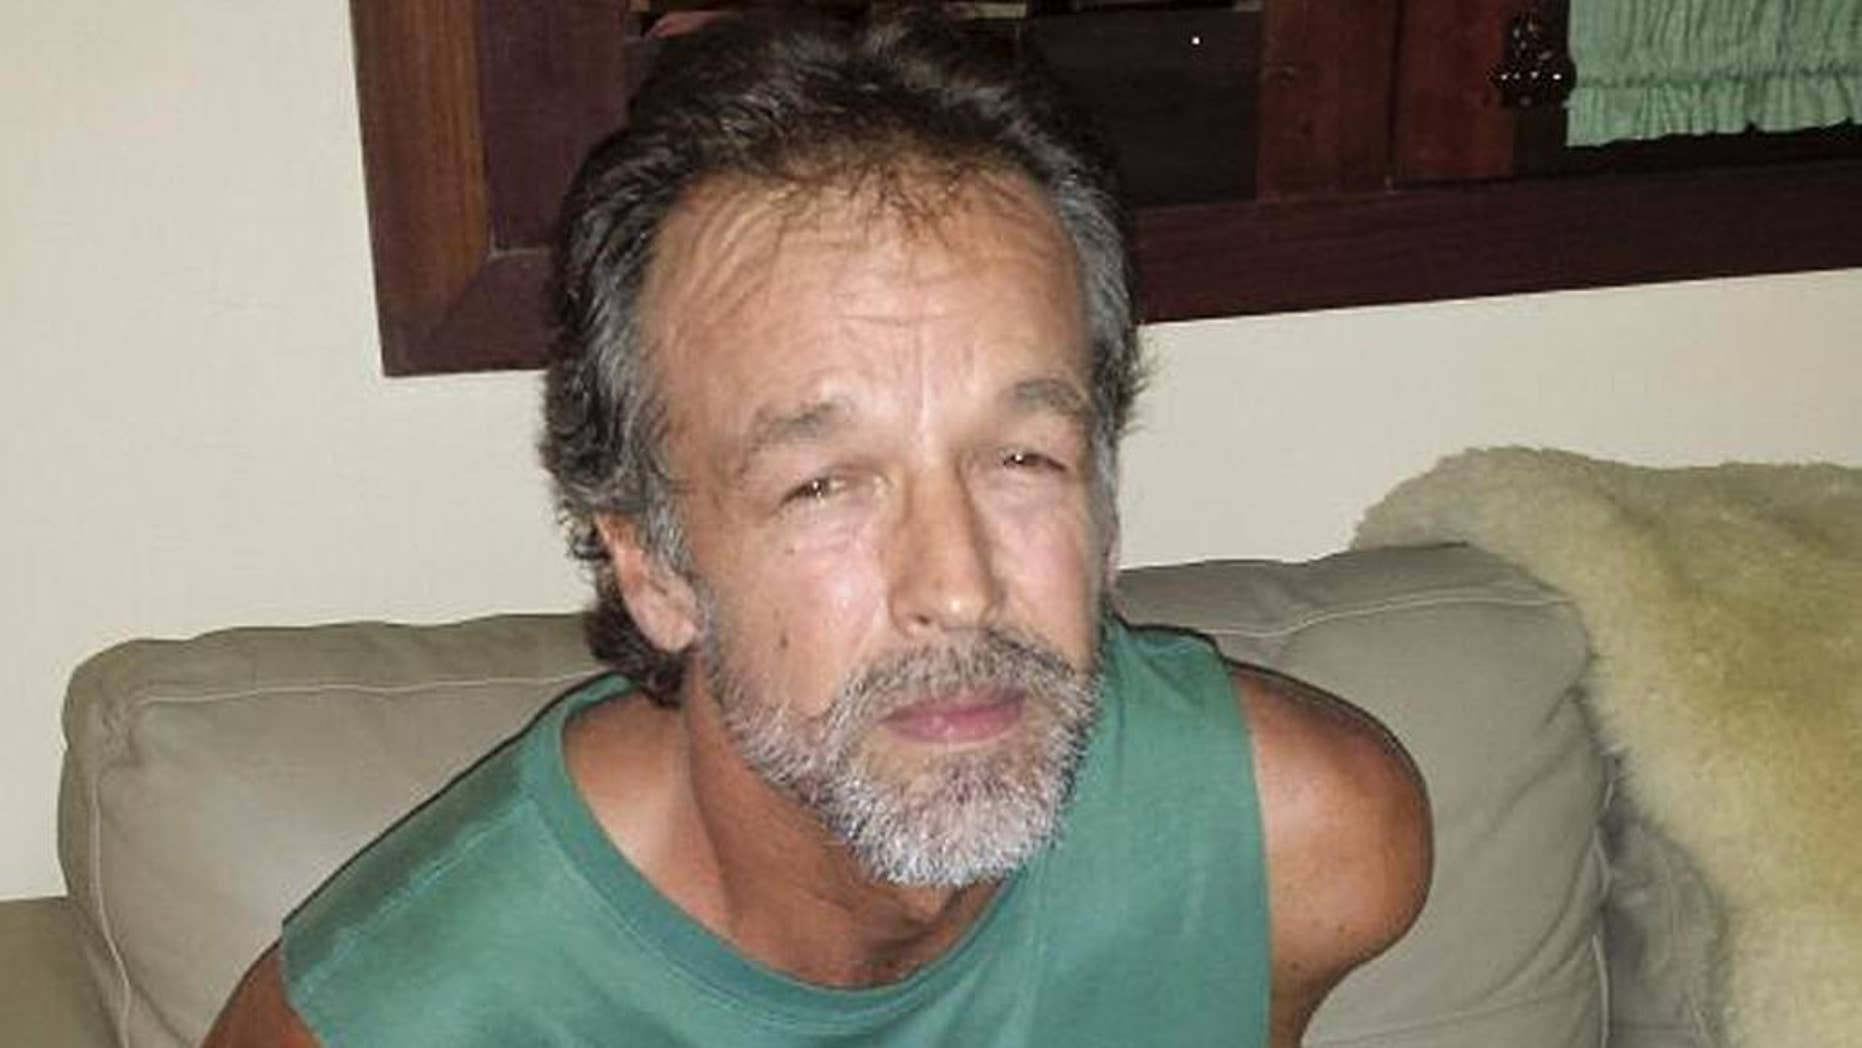 In this photo released by Rio Grande do Norte State Security secretary, American sect leader Victor Arden Barnard sits in a police station after being detained at Pipa beach, in the Northeastern state of Rio Grande do Norte, Brazil, Friday, Feb. 27, 2015. Barnard is facing 59 counts of criminal sexual conduct related to two young women who said they were abused for nearly a decade at his secluded River Road Fellowship in Minnesota. (AP Photo/Rio Grande do Norte State Security Secretary)